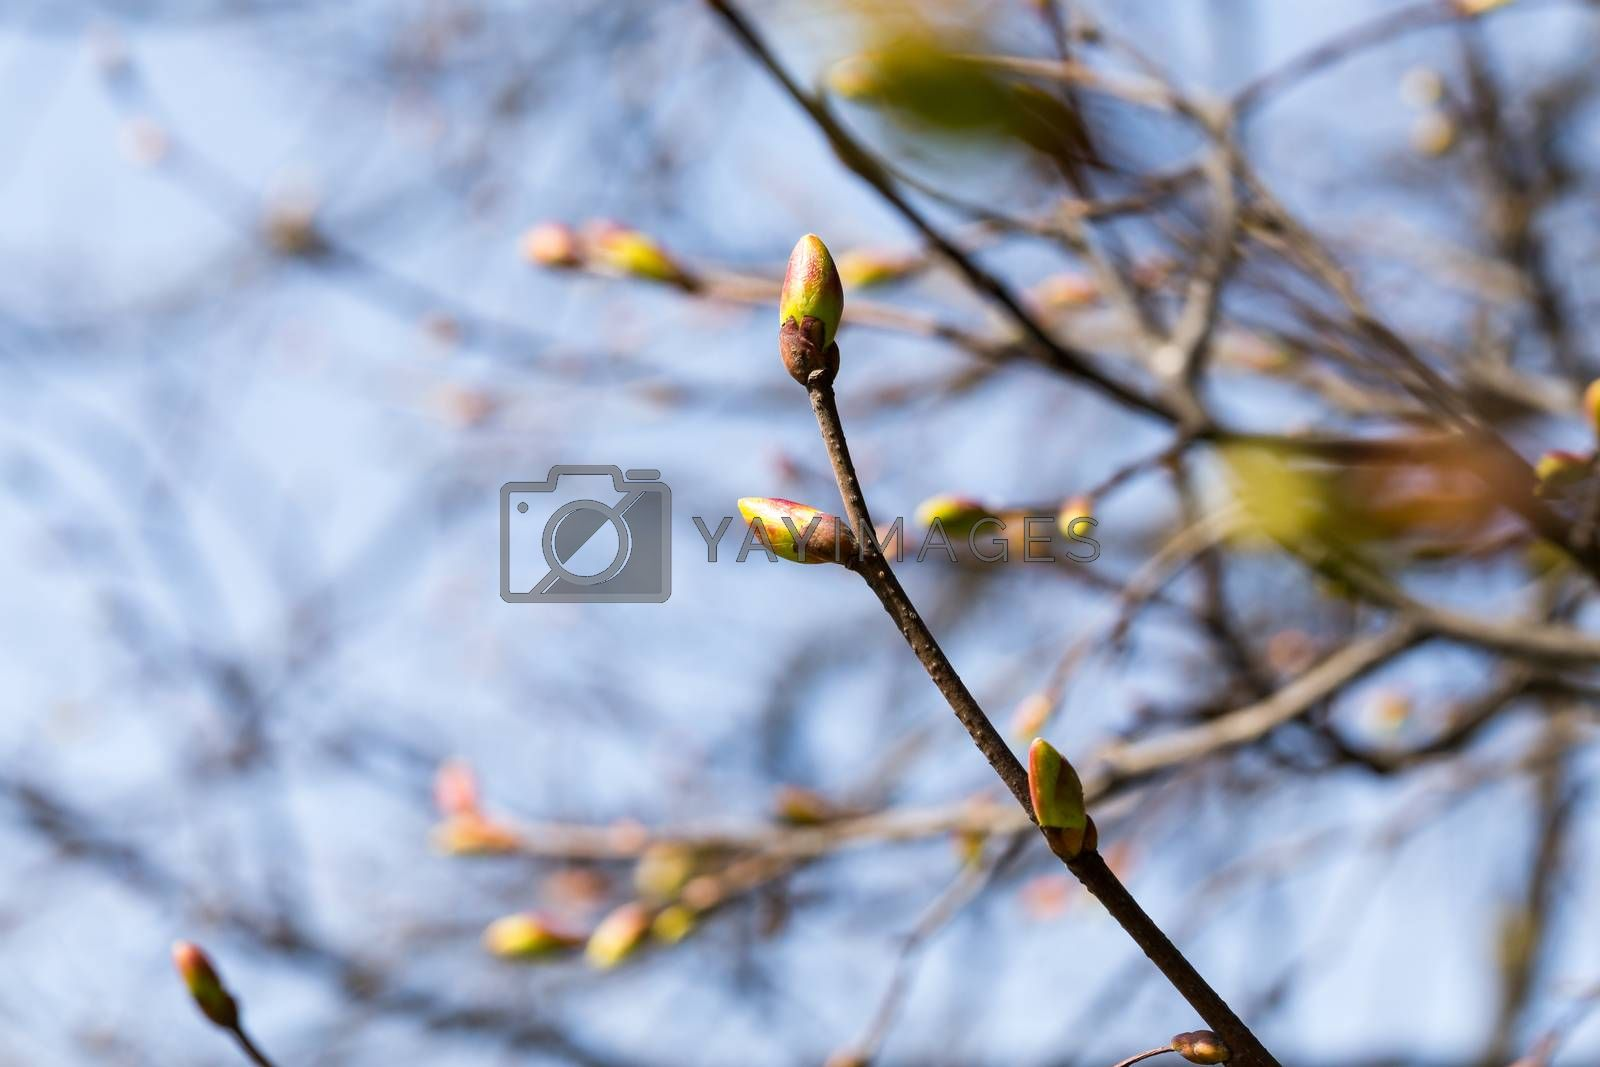 Royalty free image of Buds on a tree by RTsubin